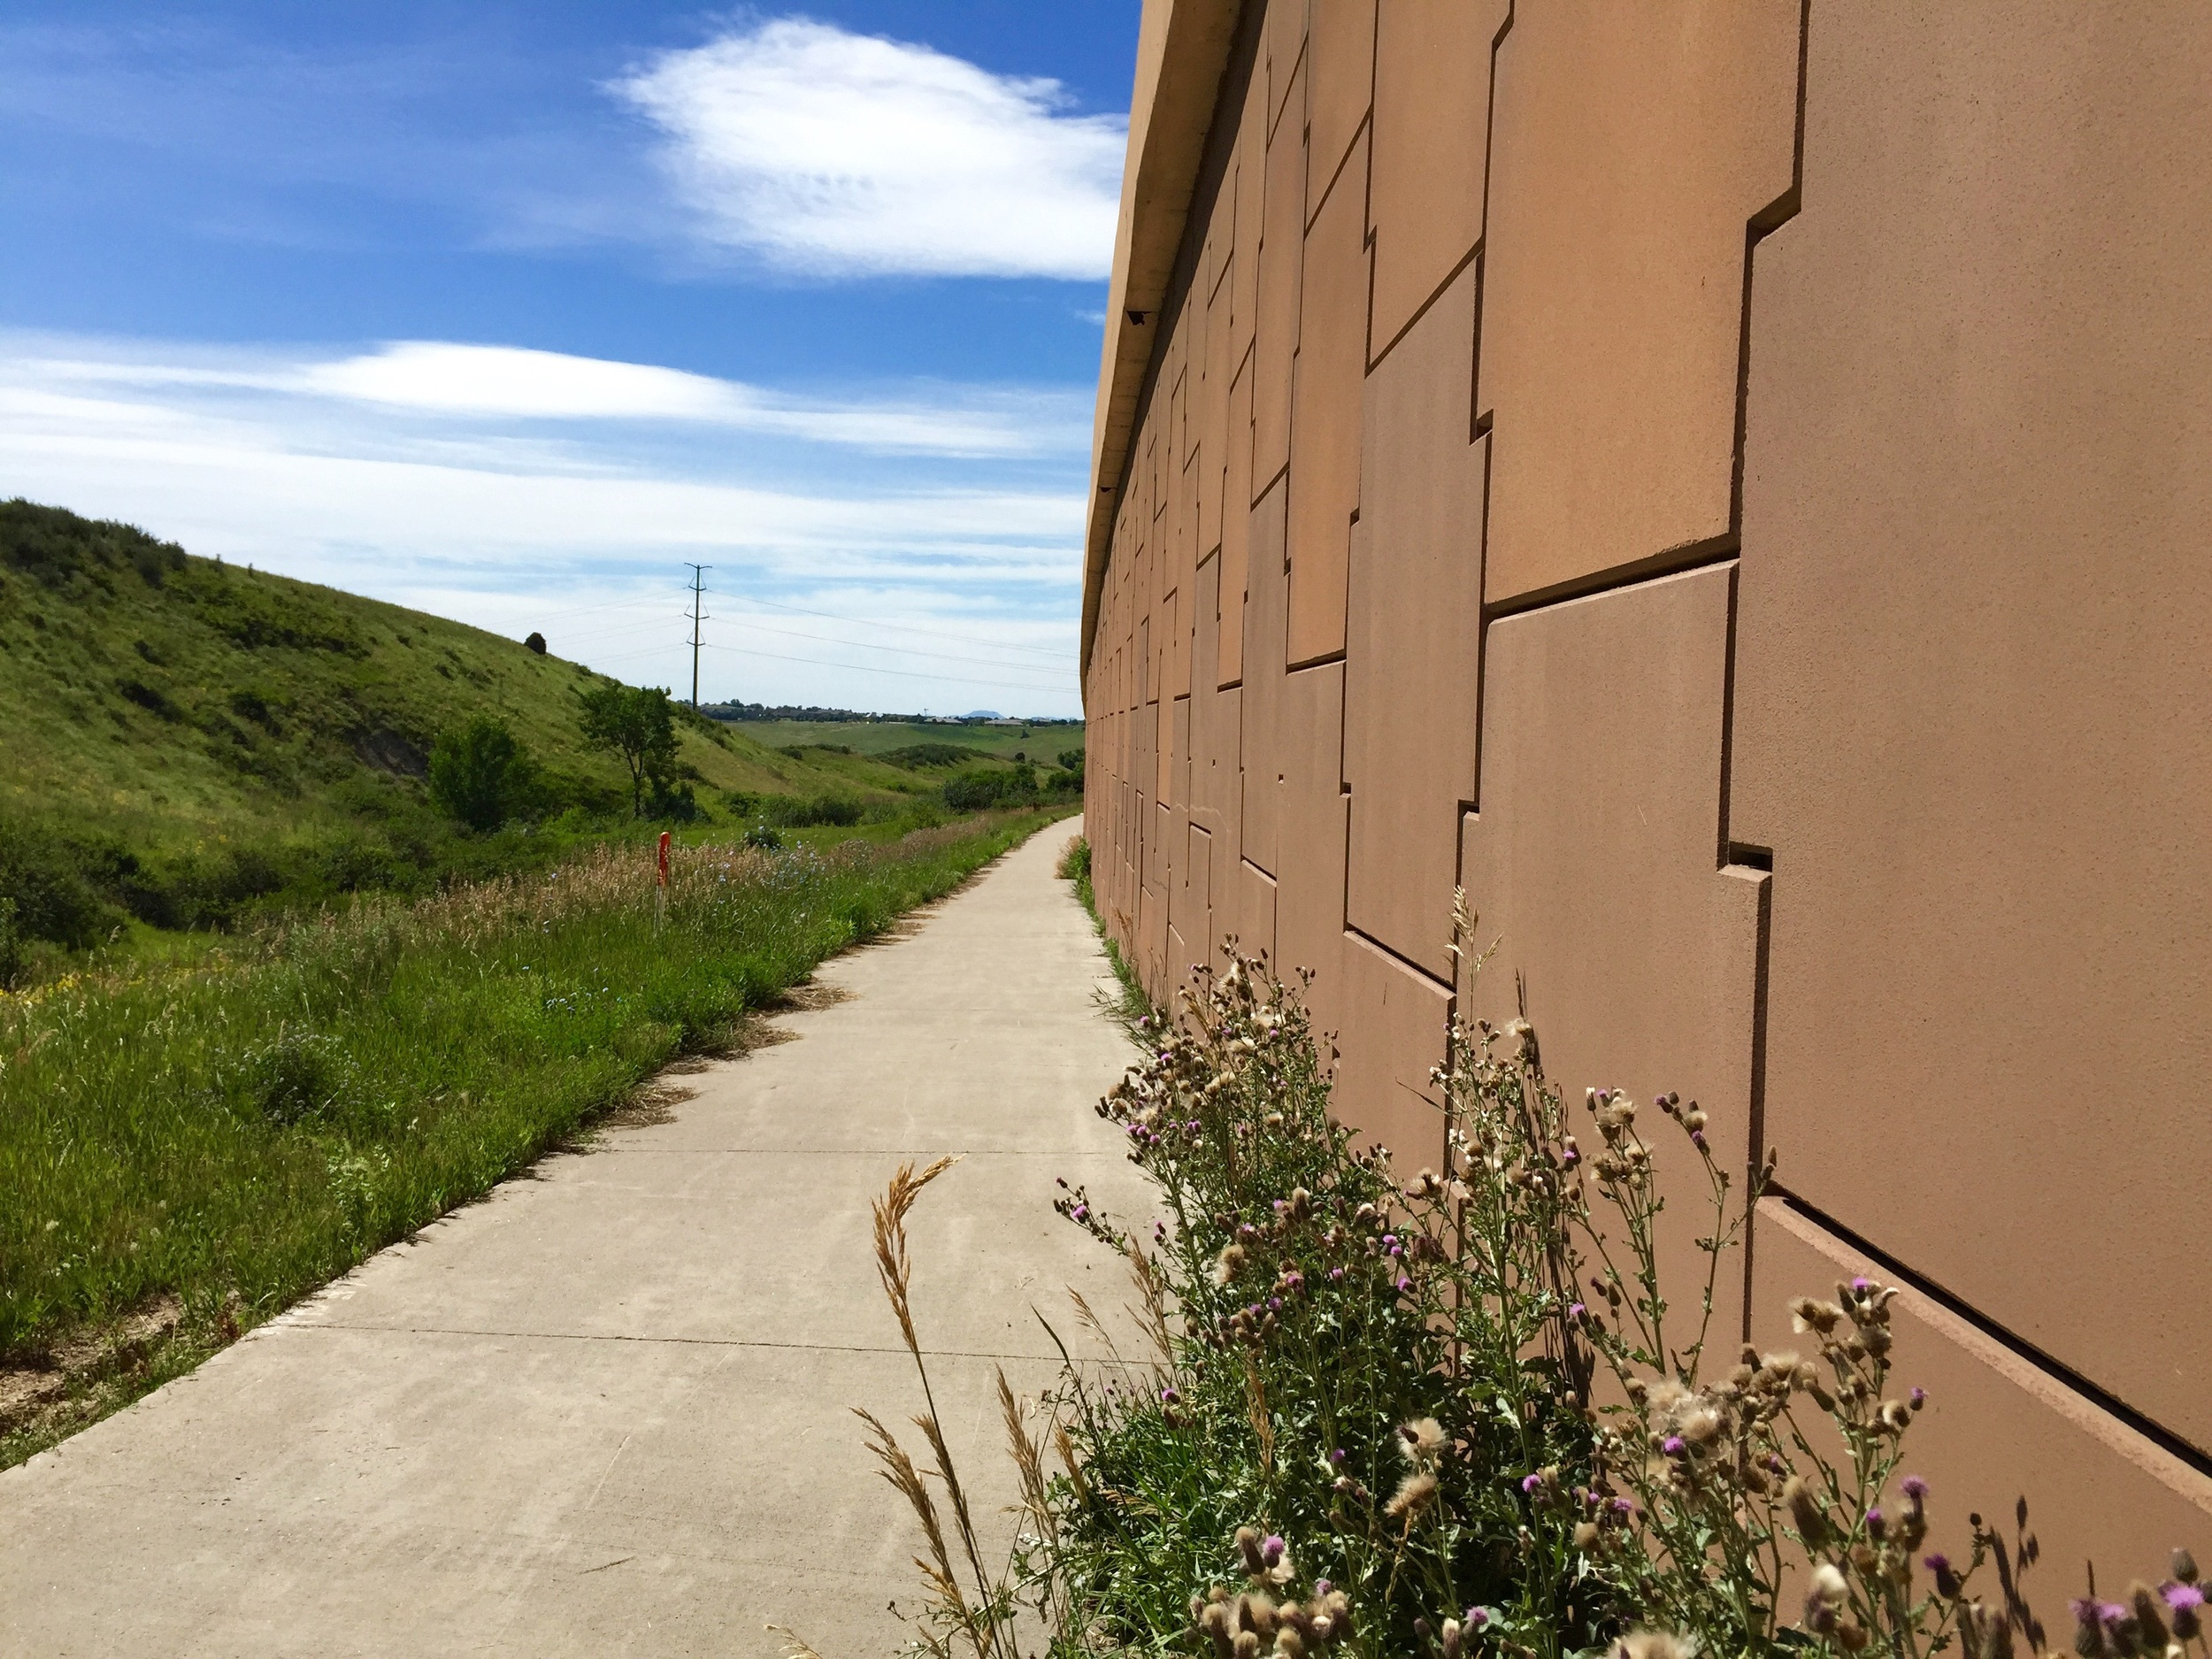 The urban and the wild each take a side of the trail along C-470